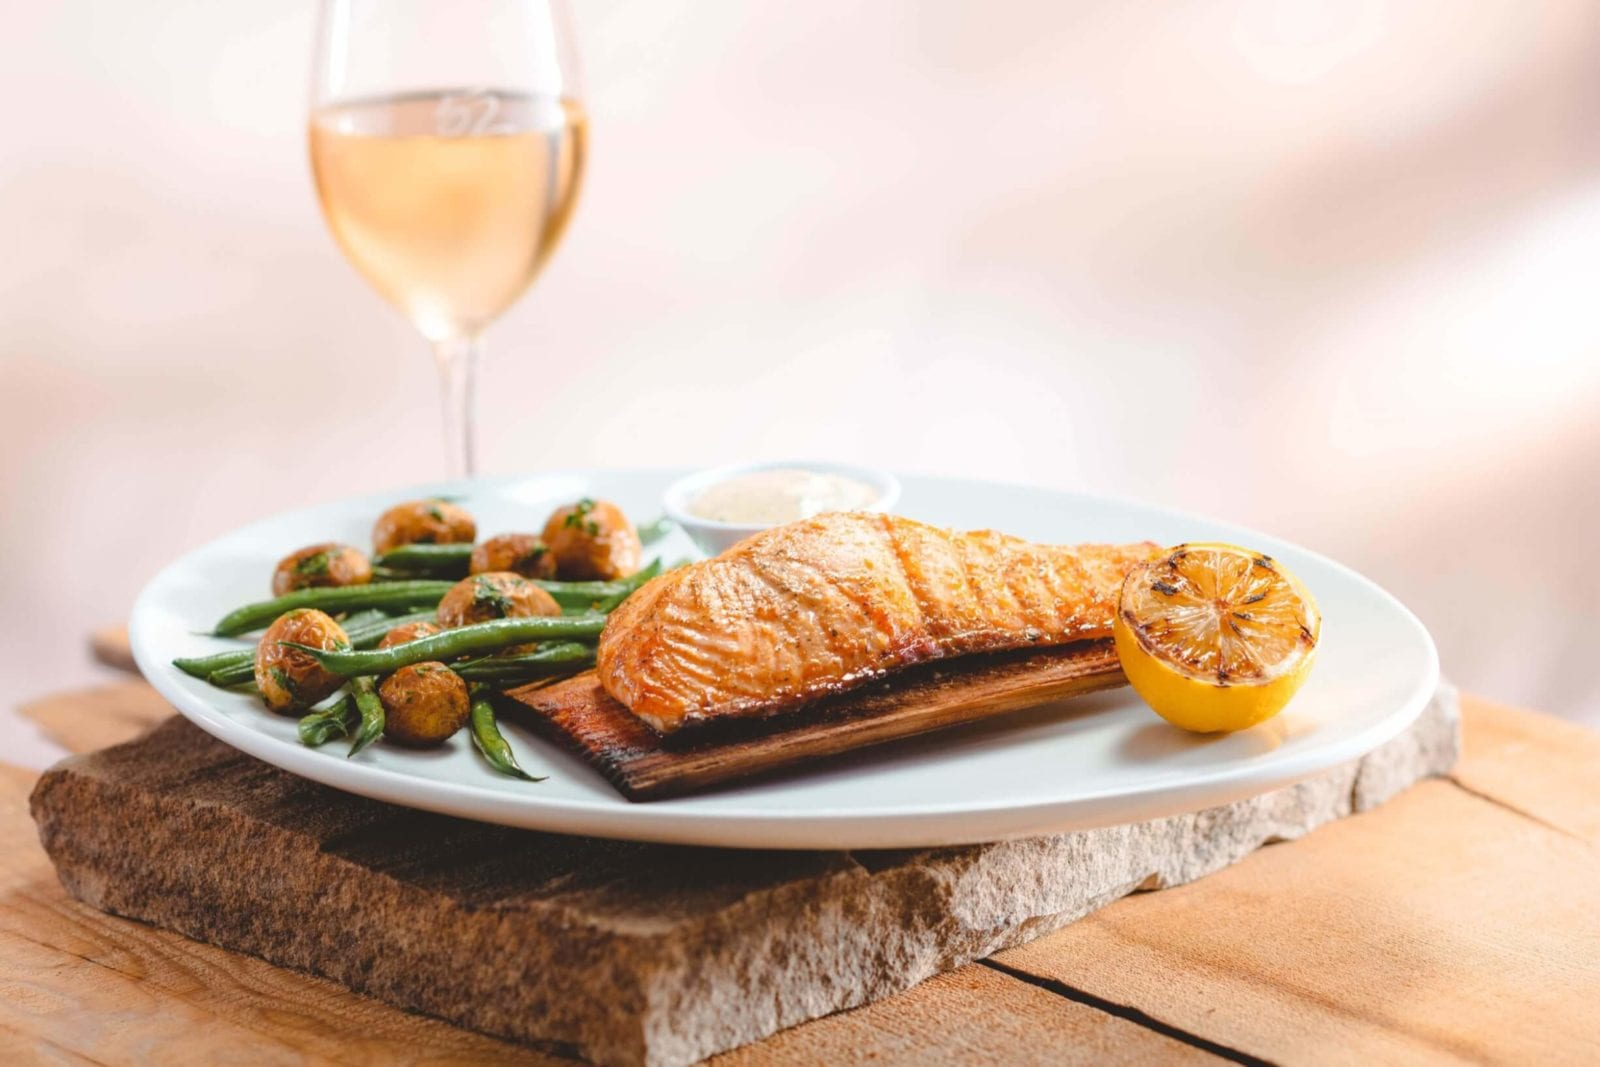 Seasons 52 Fort Lauderdale's Cedar Plank-Roasted Salmon